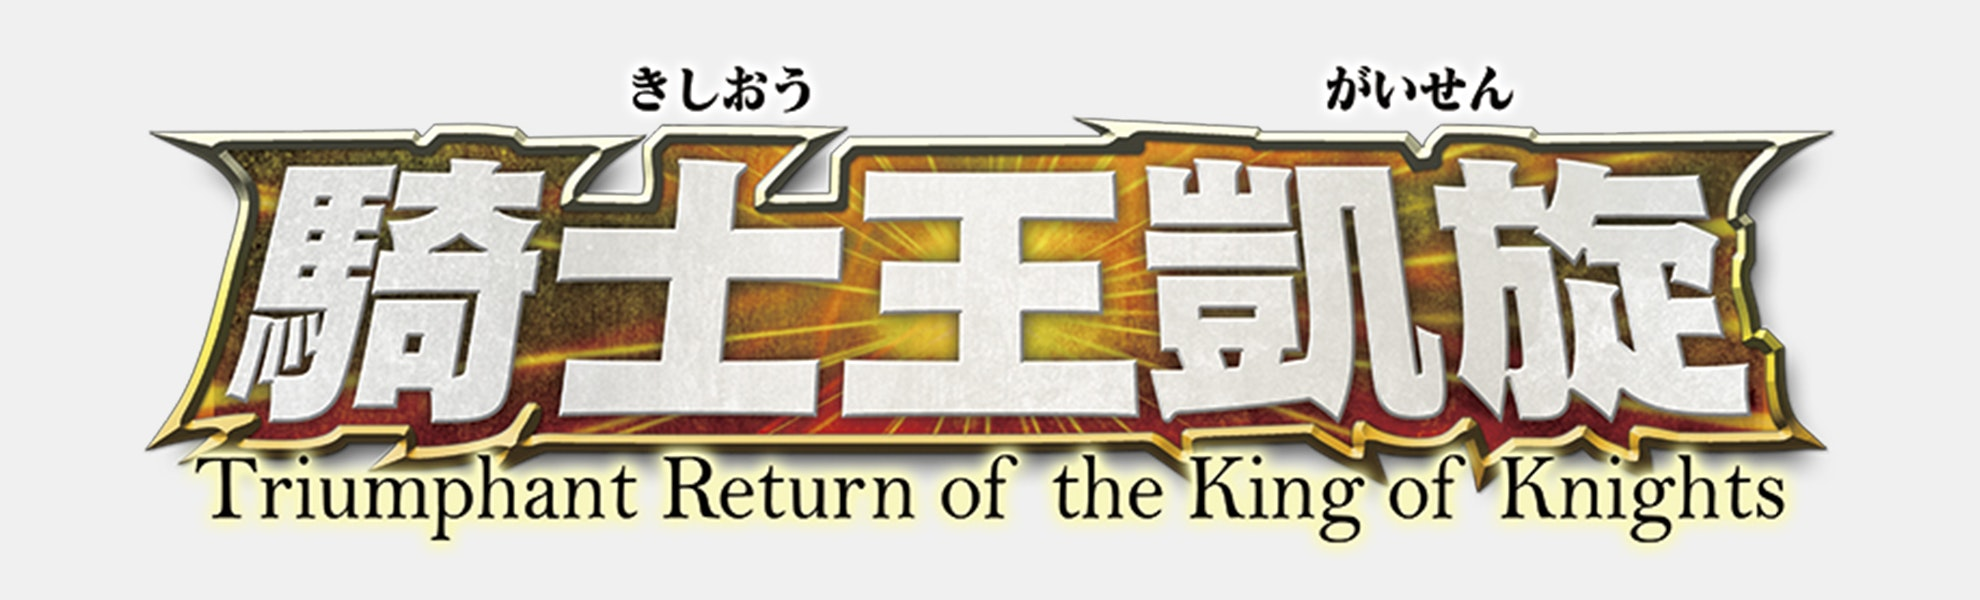 Cardfight! Triumphant Return of the King of Knights